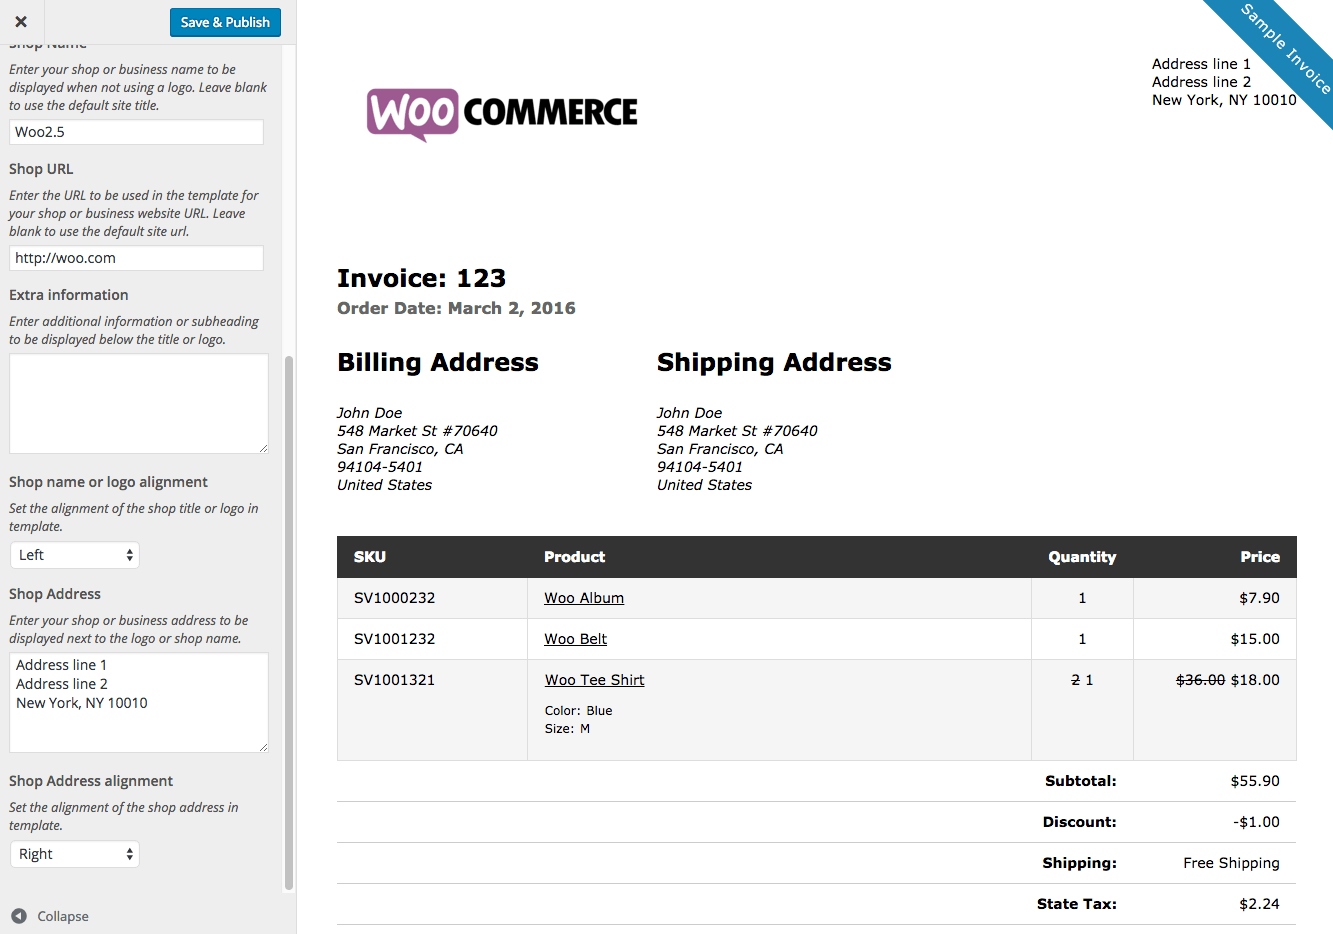 Musclebuildingtipsus  Marvelous Print Invoices Amp Packing Lists  Woocommerce With Marvelous Woocommerce Print Invoices  Packing Lists Customizer With Breathtaking Proforma Invoice Software Also Sme Invoice Finance In Addition Carcostcanada Wholesale Invoice Price Report And Sample Company Invoice As Well As Template Tax Invoice Additionally Company Invoice Forms From Woocommercecom With Musclebuildingtipsus  Marvelous Print Invoices Amp Packing Lists  Woocommerce With Breathtaking Woocommerce Print Invoices  Packing Lists Customizer And Marvelous Proforma Invoice Software Also Sme Invoice Finance In Addition Carcostcanada Wholesale Invoice Price Report From Woocommercecom